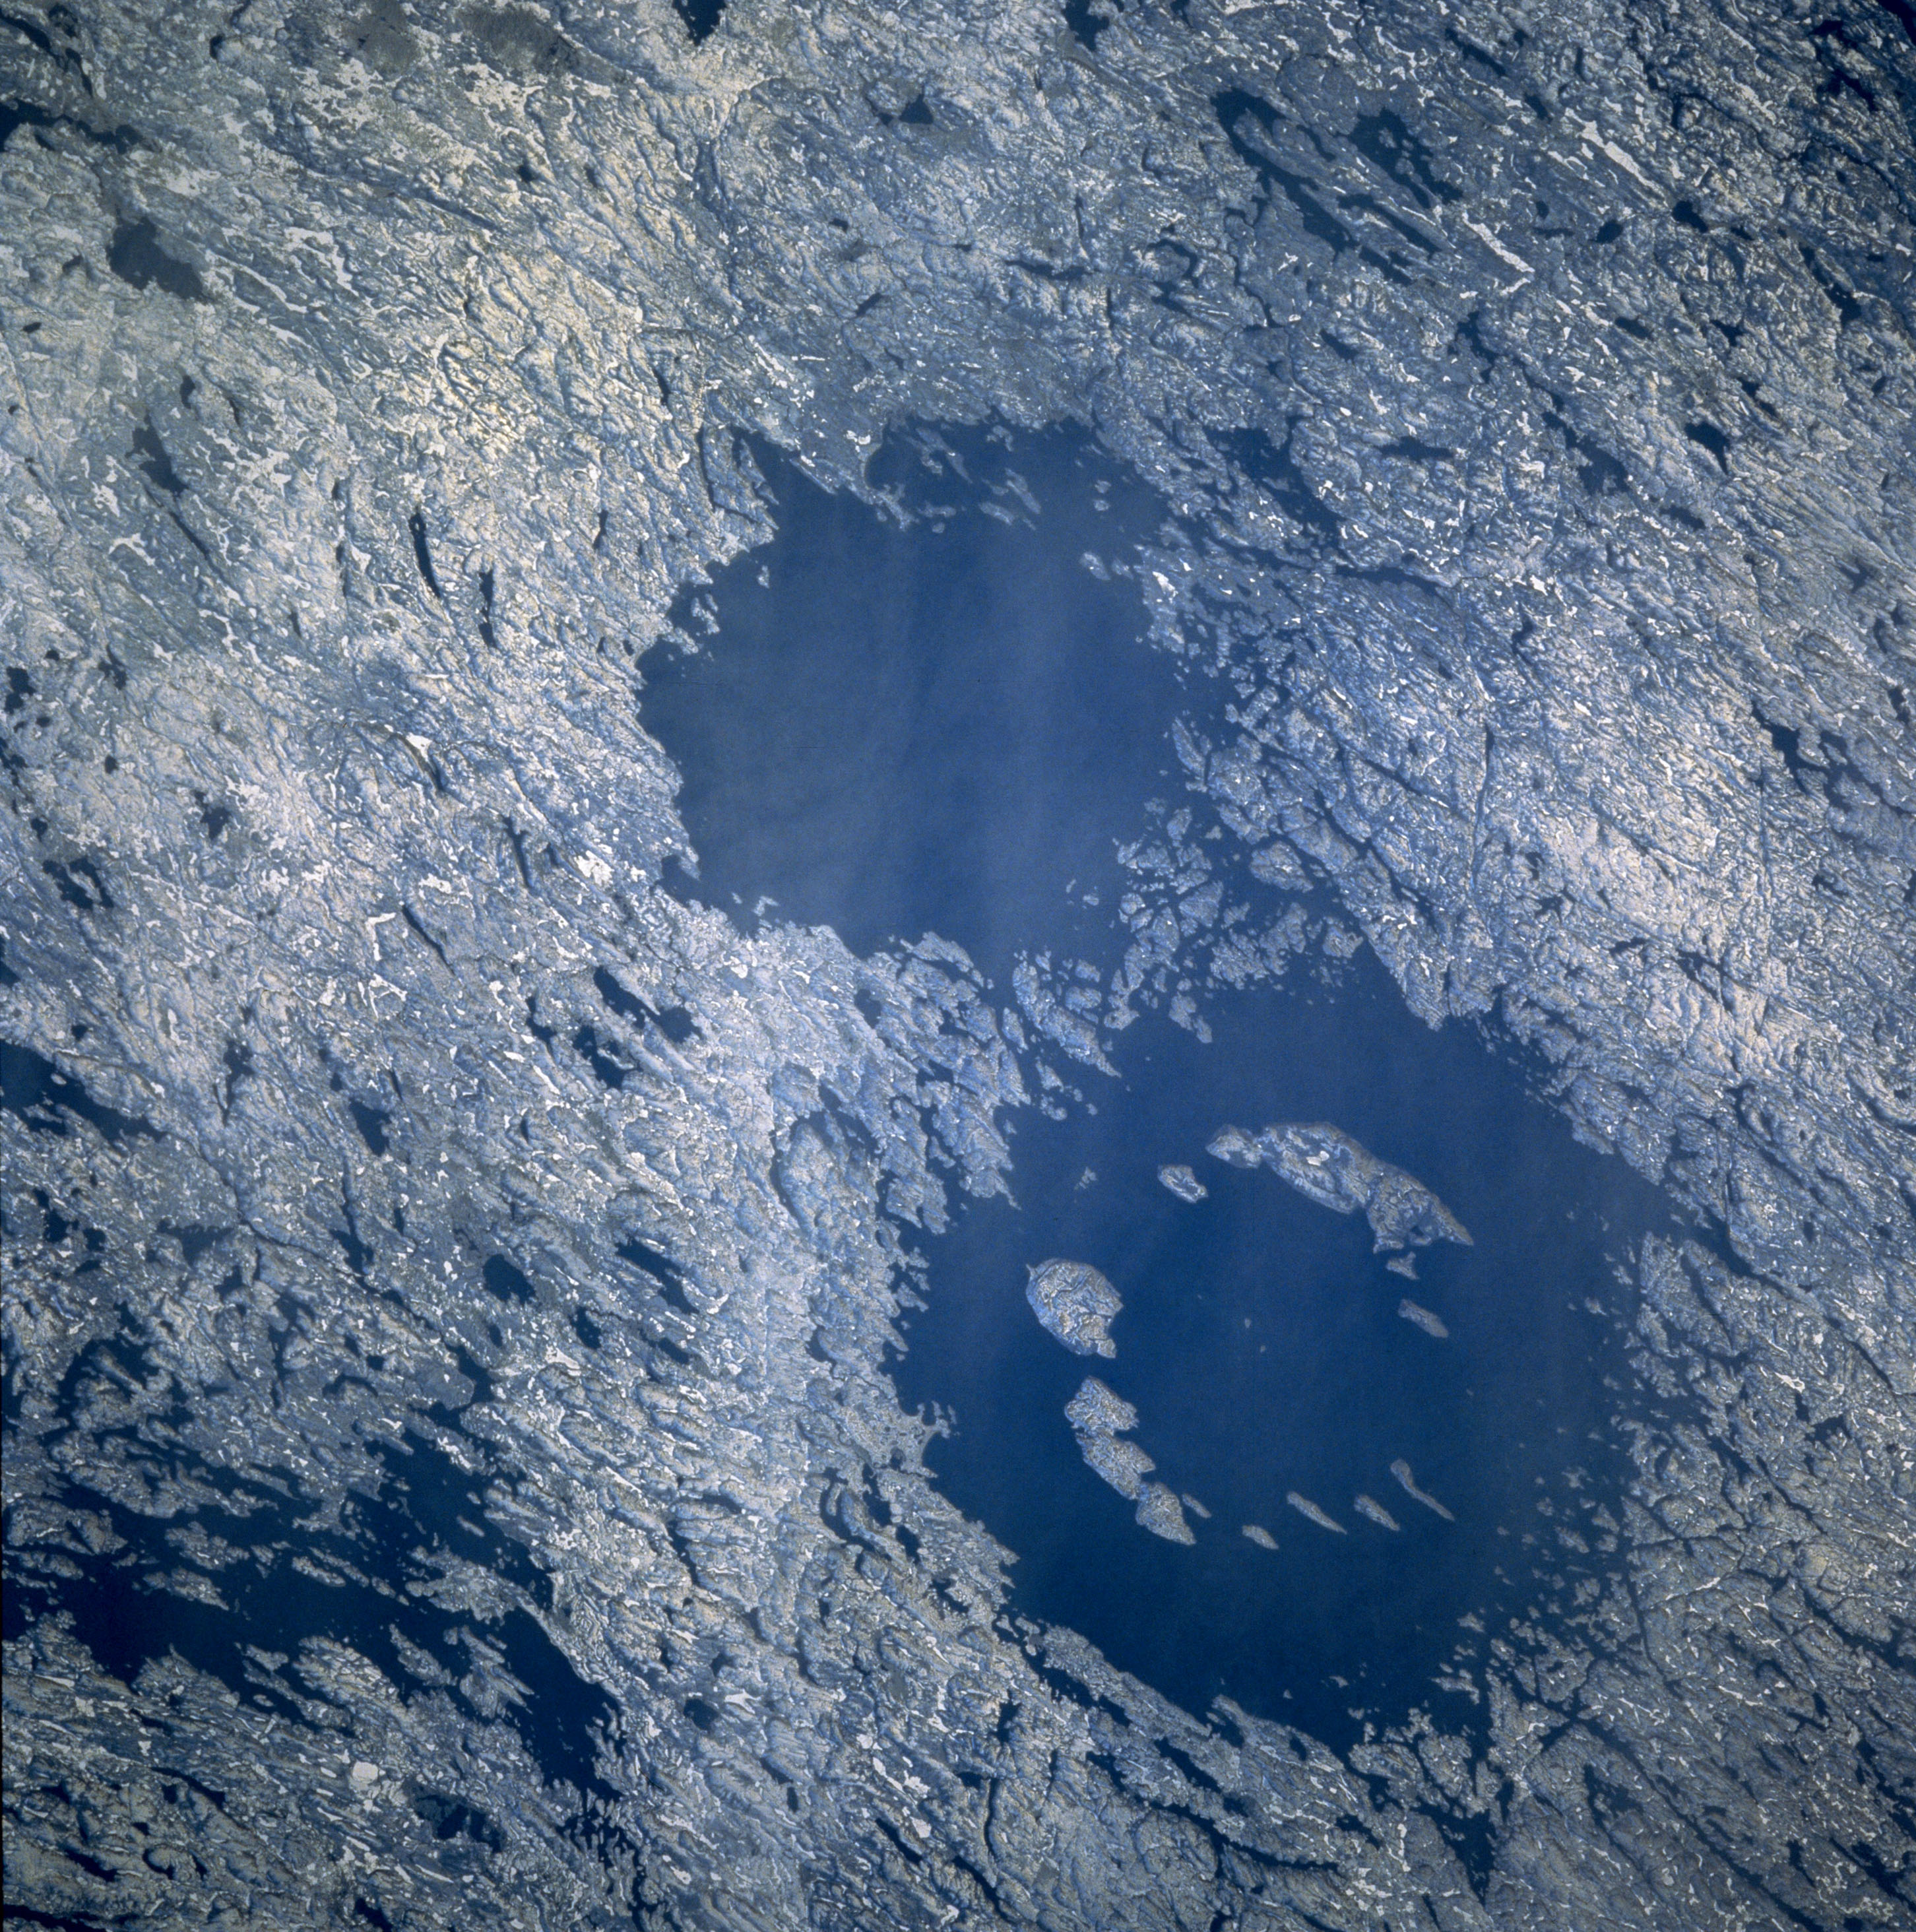 craters on earth produced by meteorites